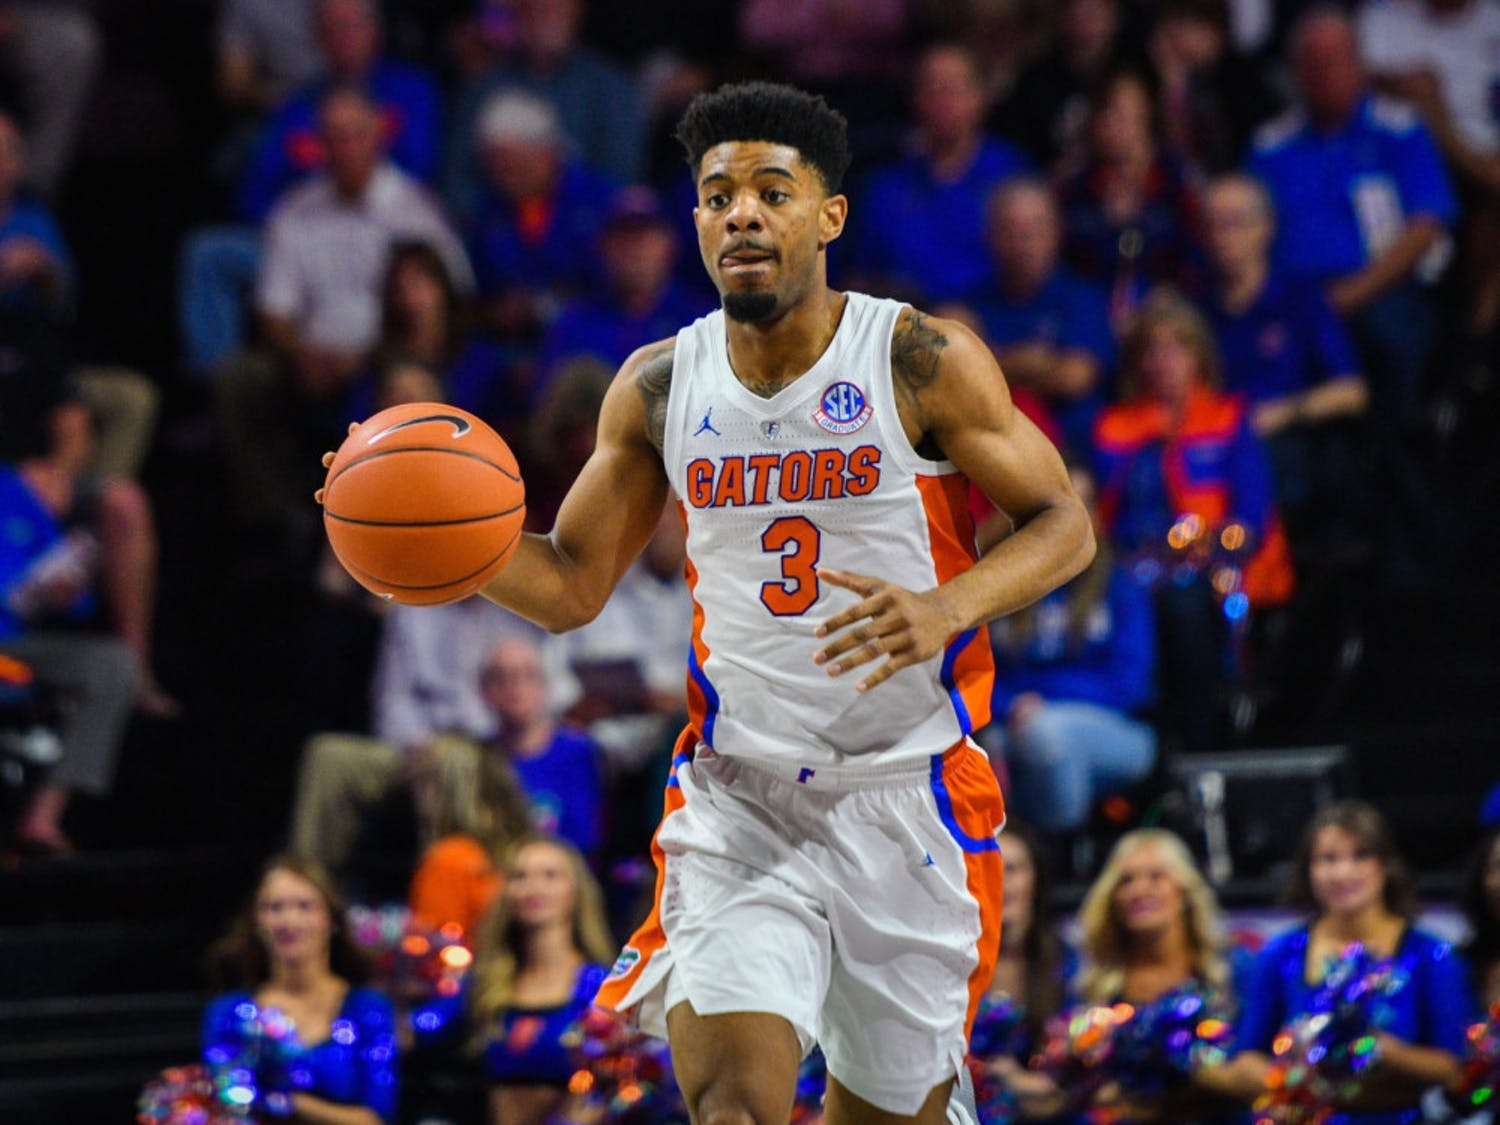 Senior guard Jalen Hudson played 20 minutes against Tennessee and finished with two points on 1 of 7 shooting in the 78-67 loss.